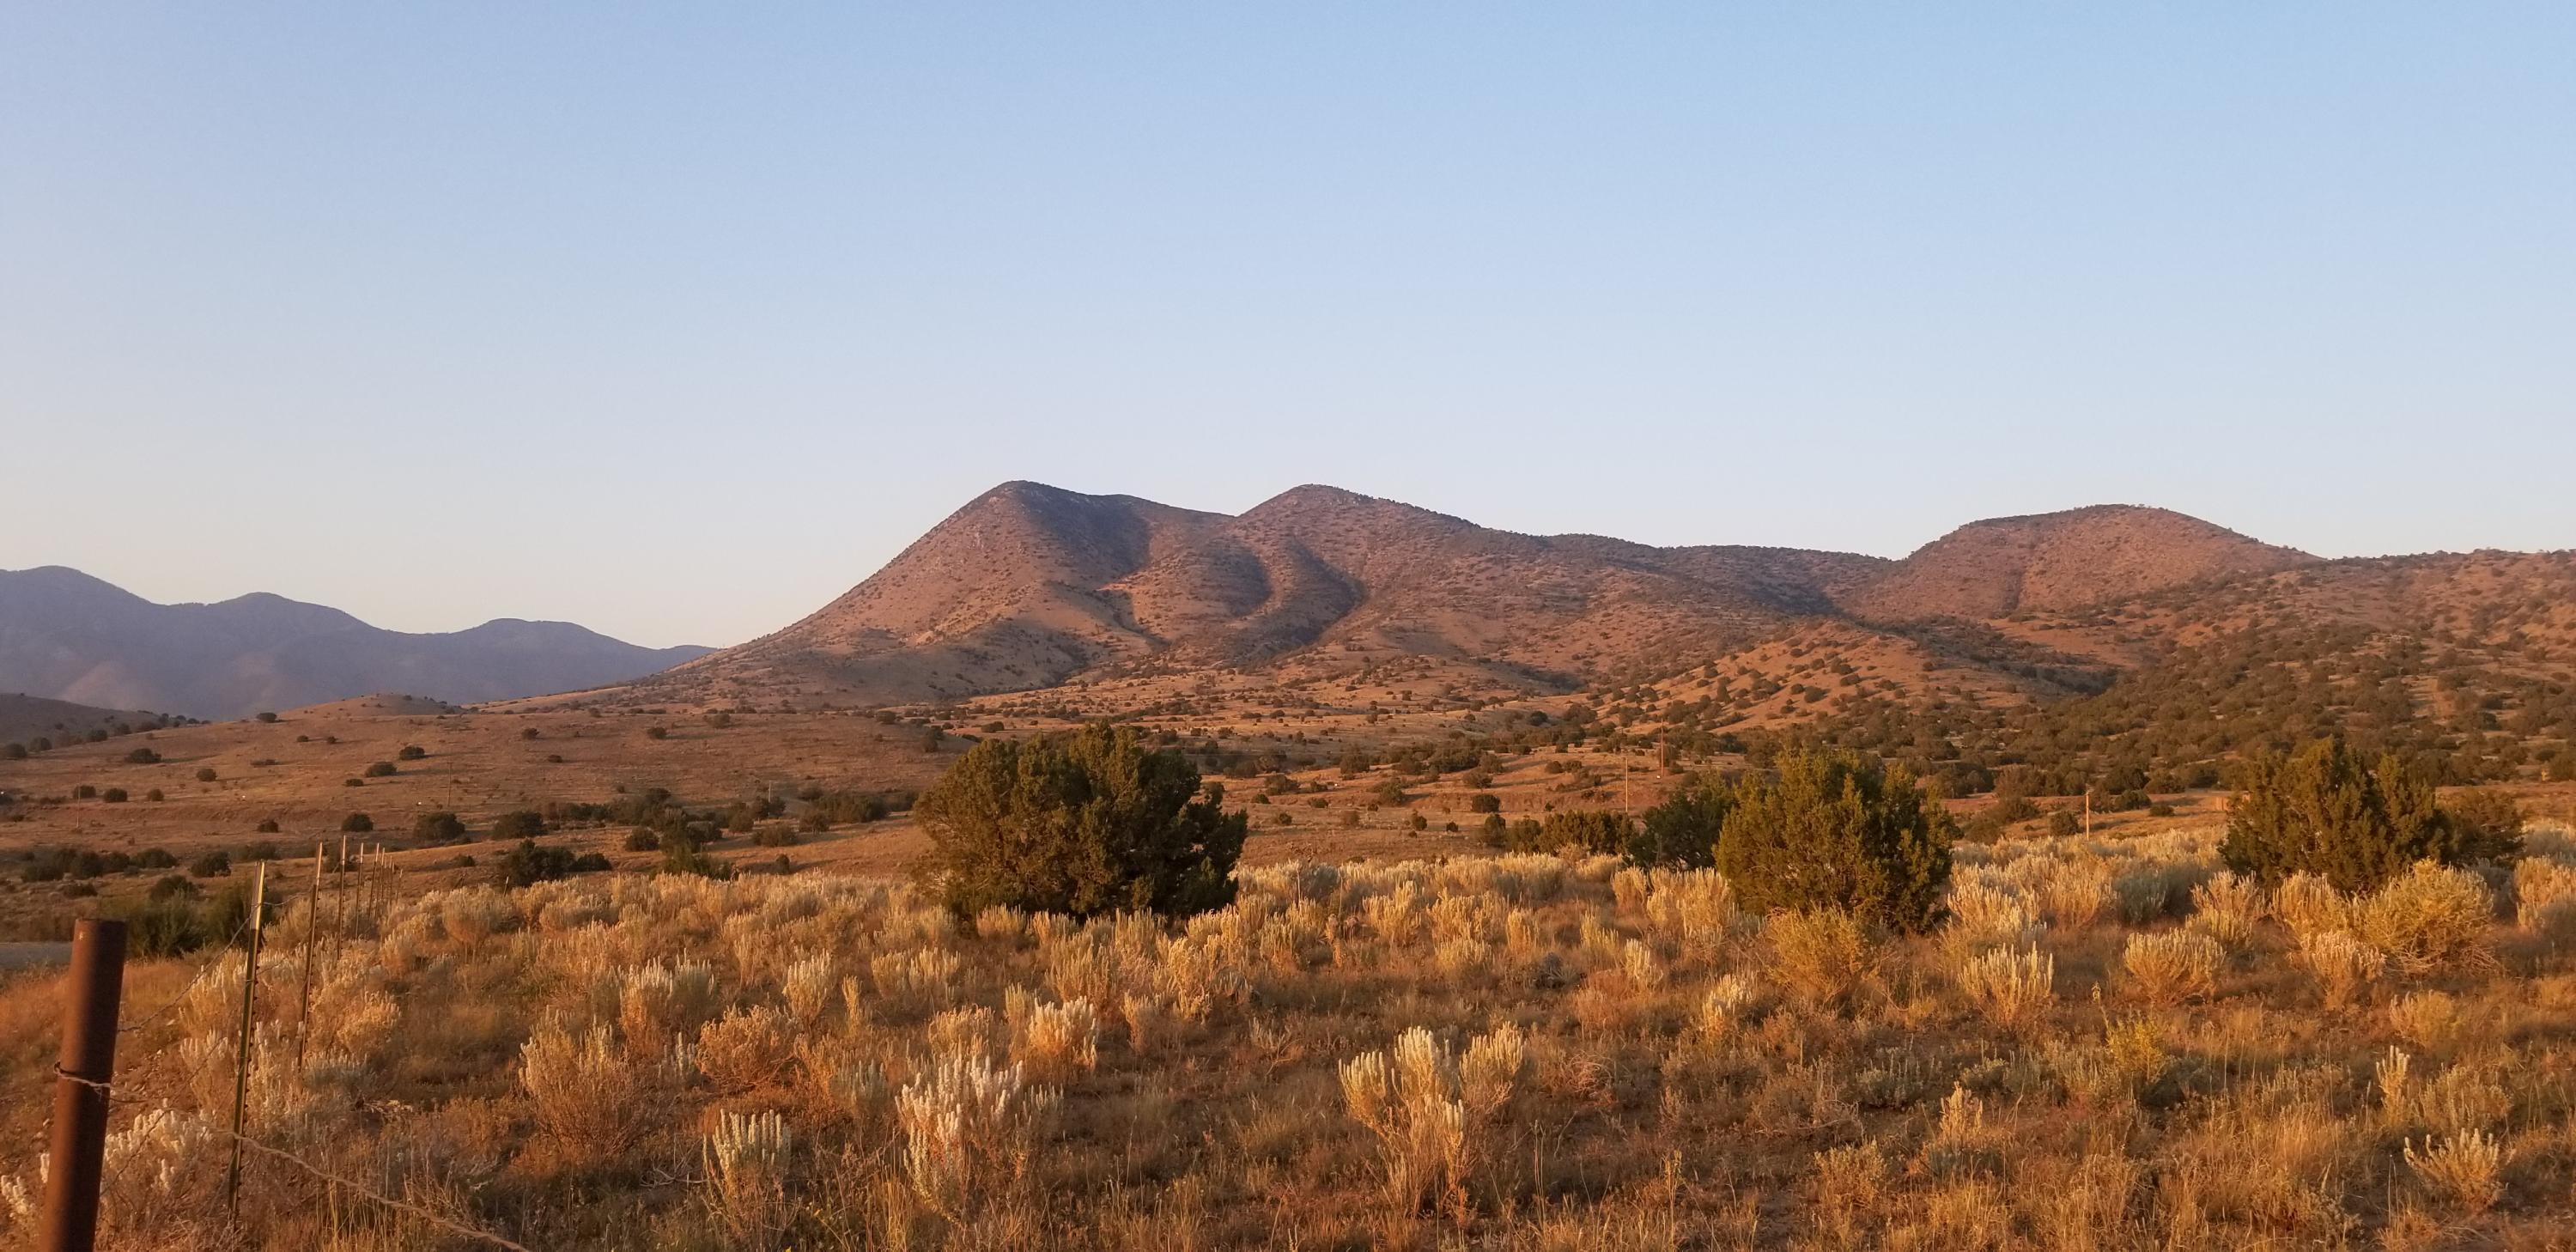 000 Longhorn Loop, Unincorporated, New Mexico 99999, ,Land,For sale,Longhorn,836037